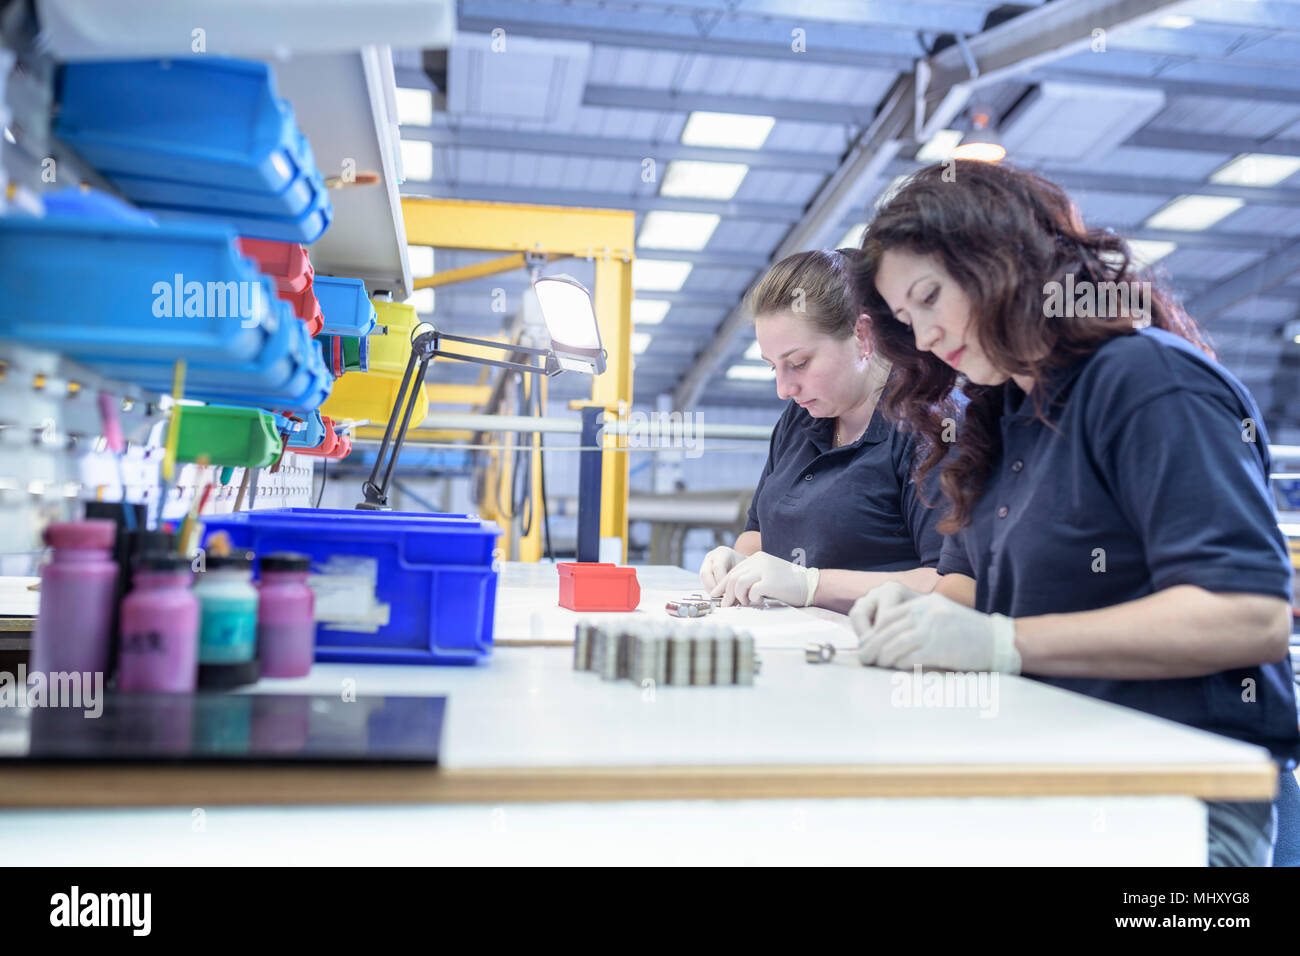 Female workers painting wax masking onto components in electroplating factory - Stock Image